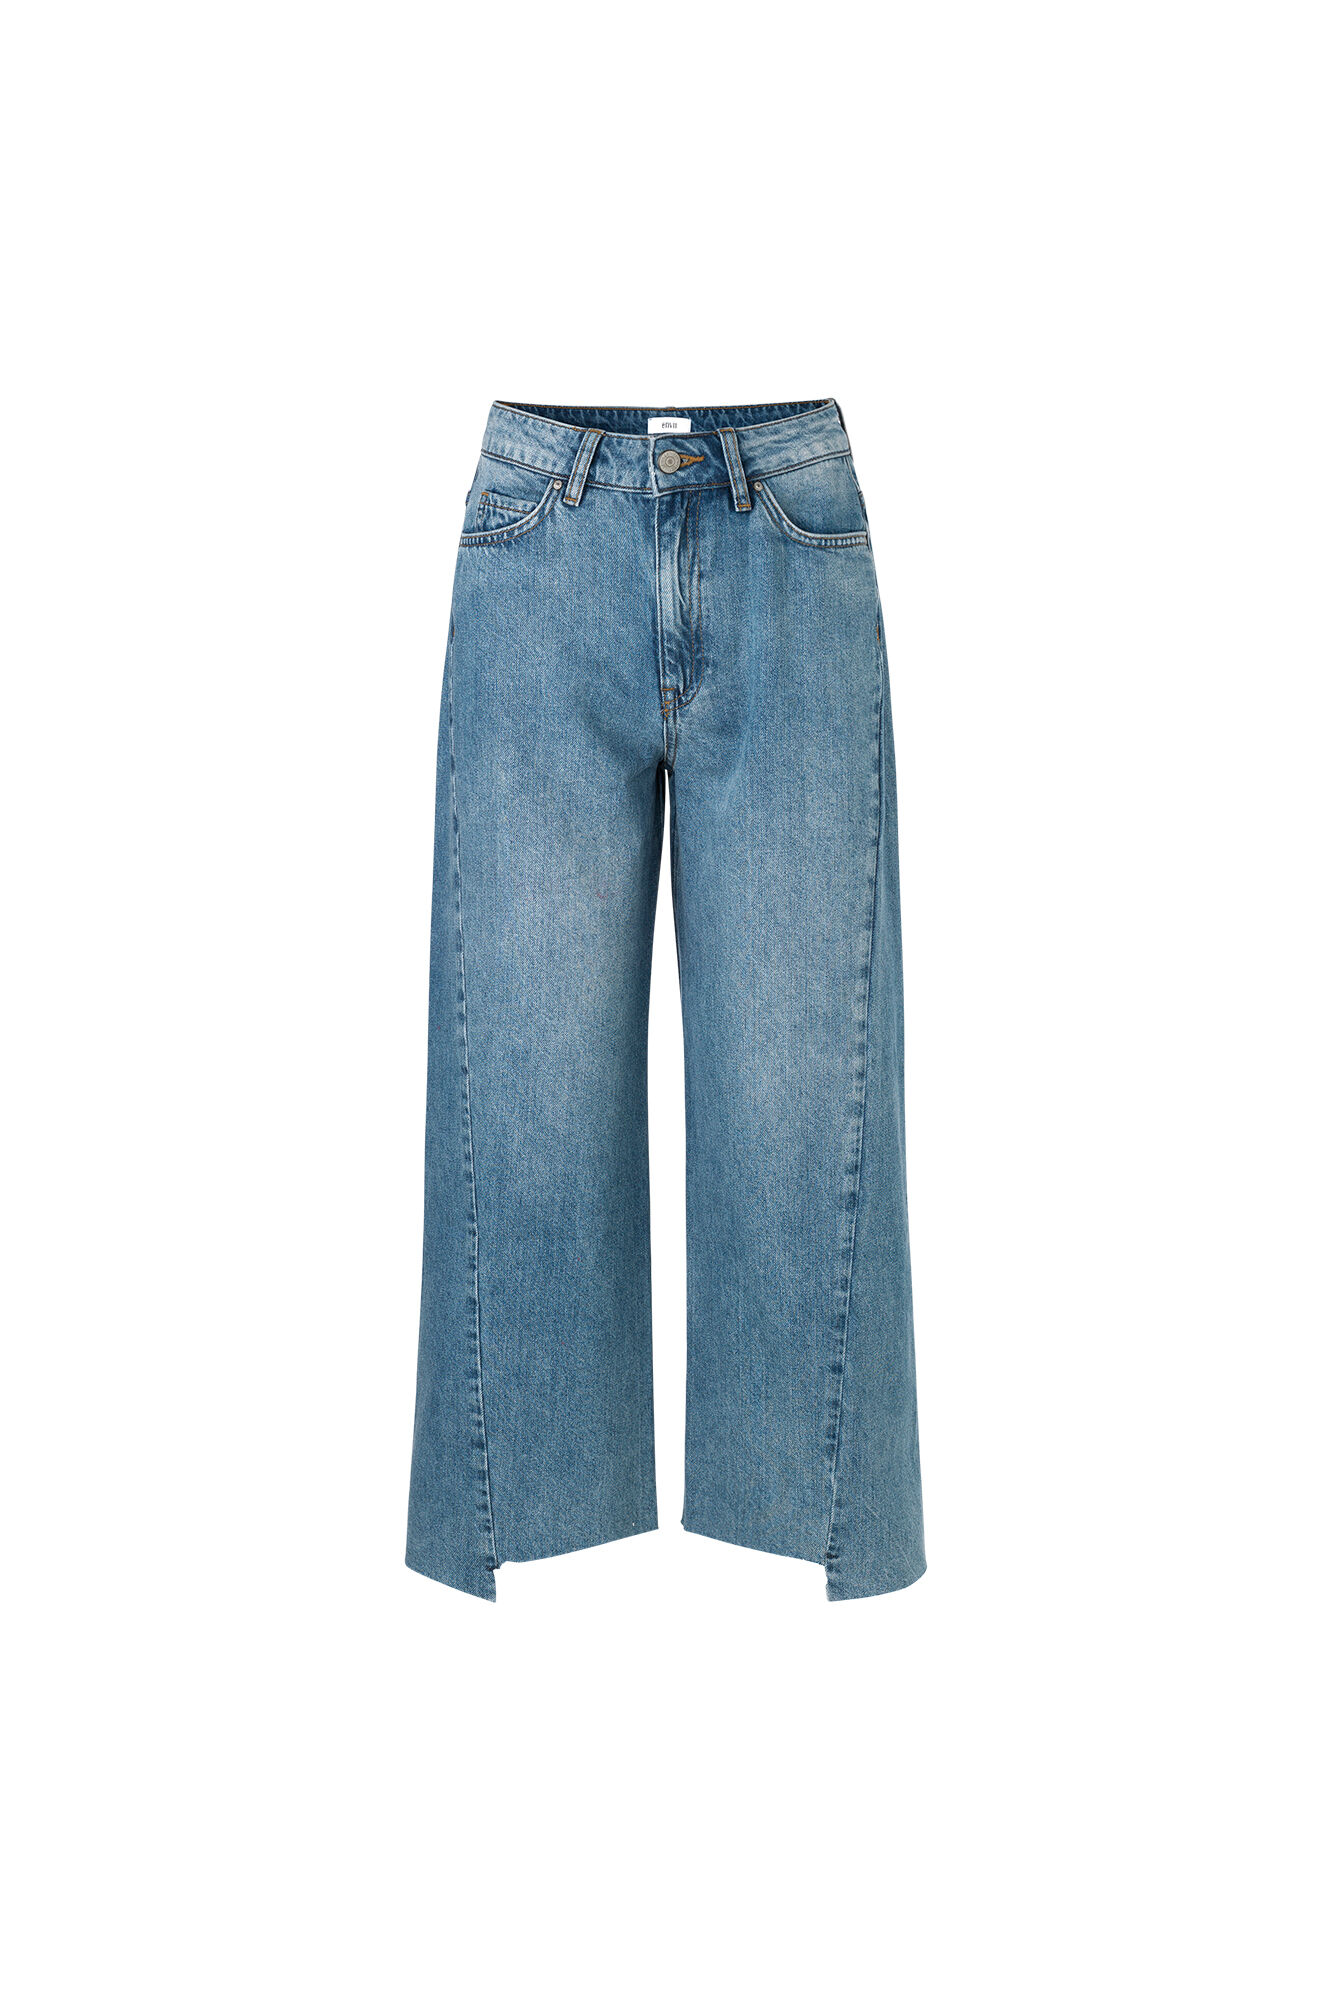 ENBERTHA JEANS 6480, TRUE BLUE